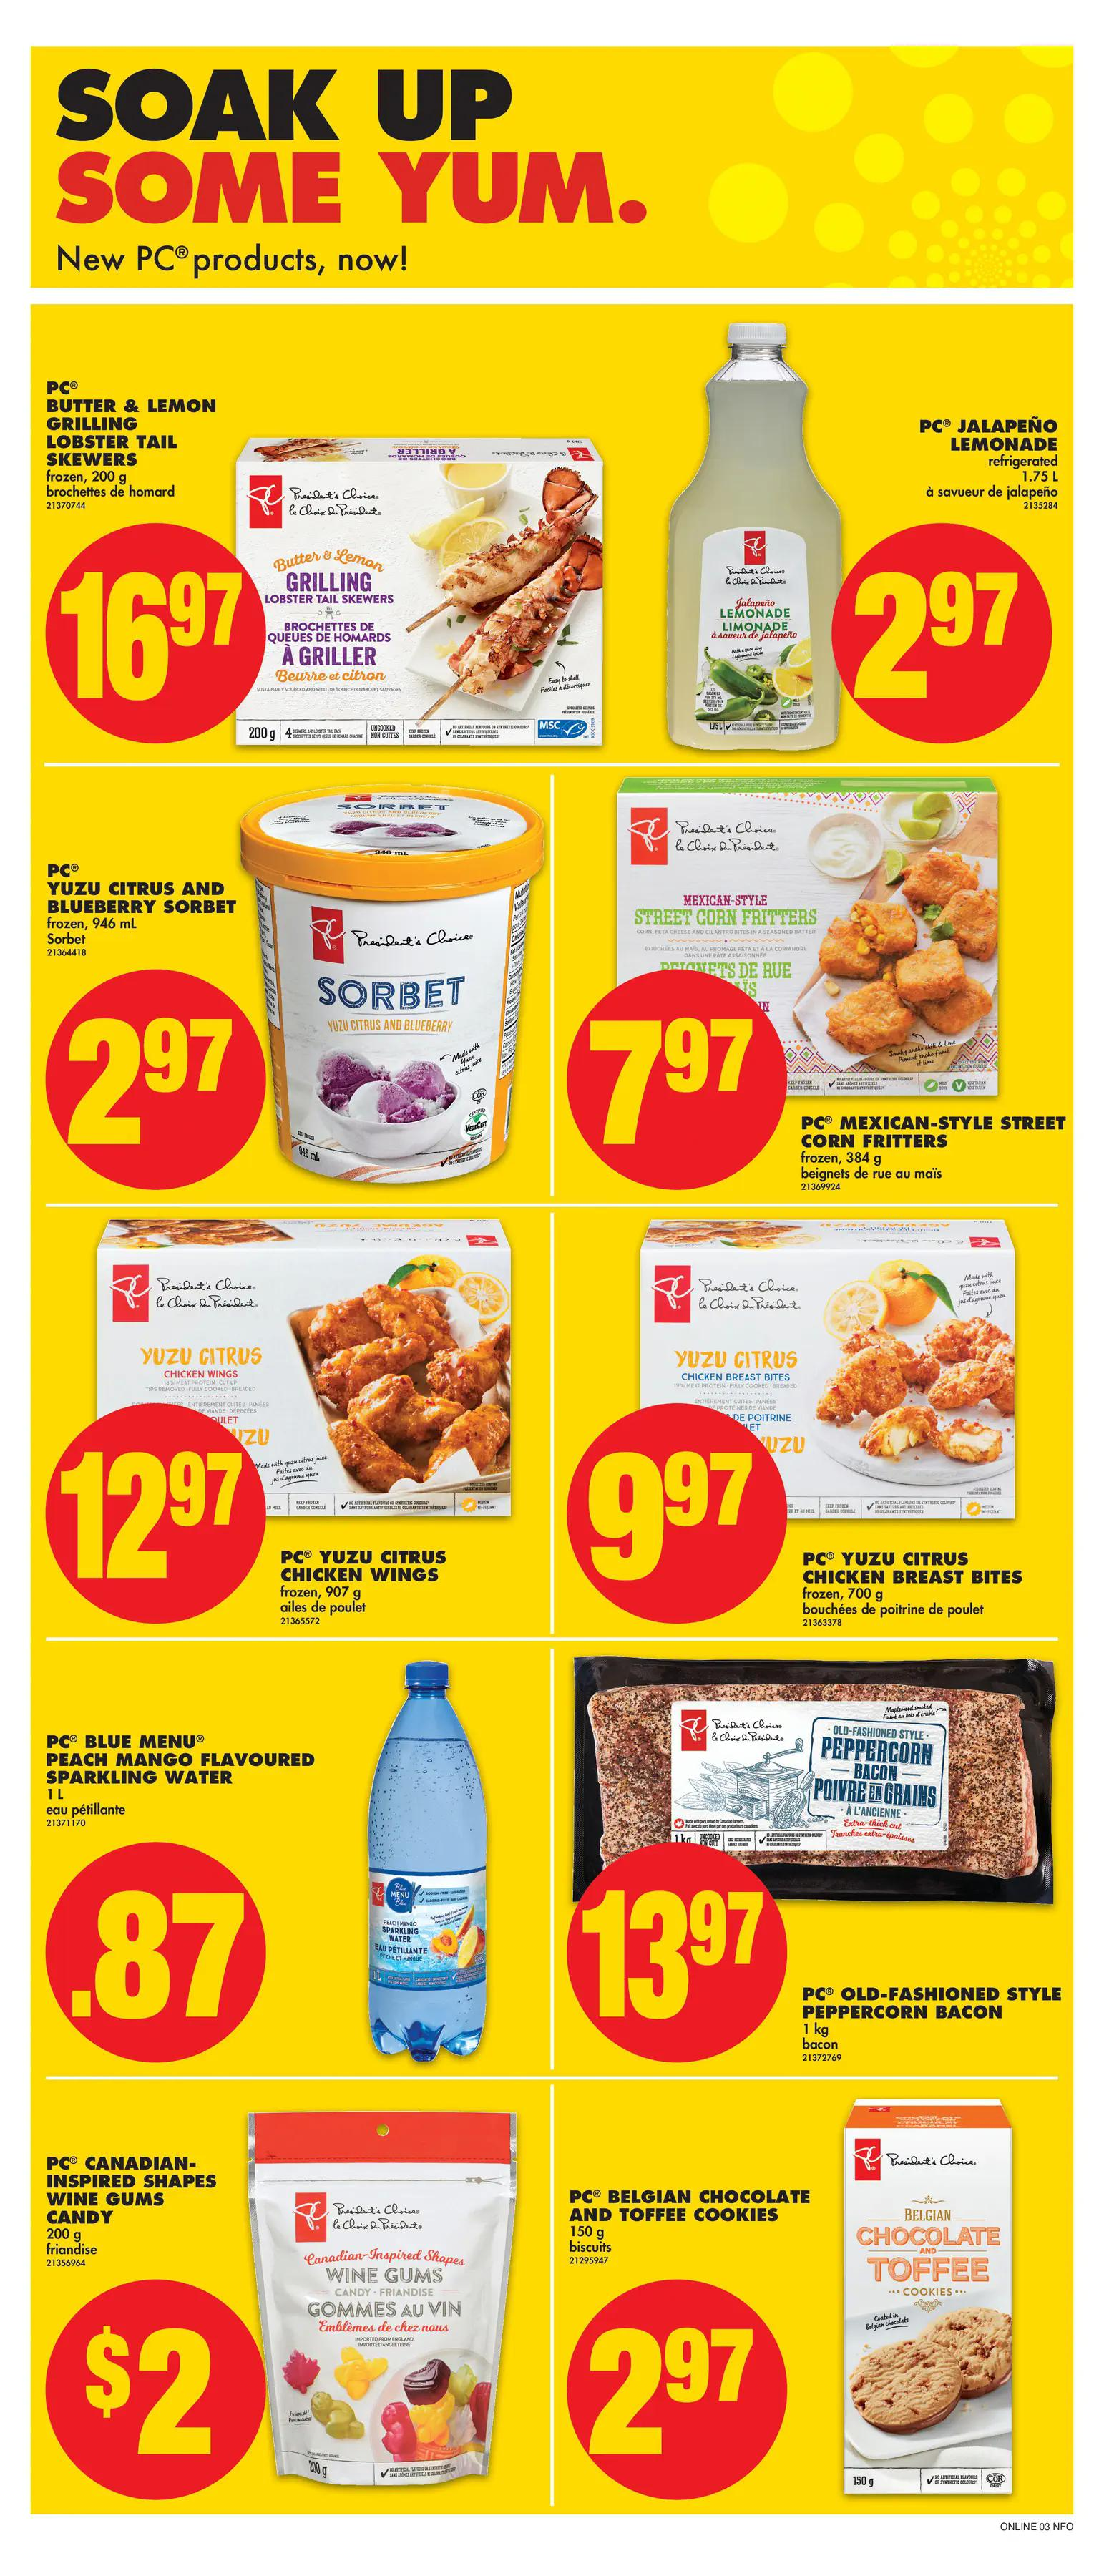 No Frills - Weekly Flyer Specials - Page 8